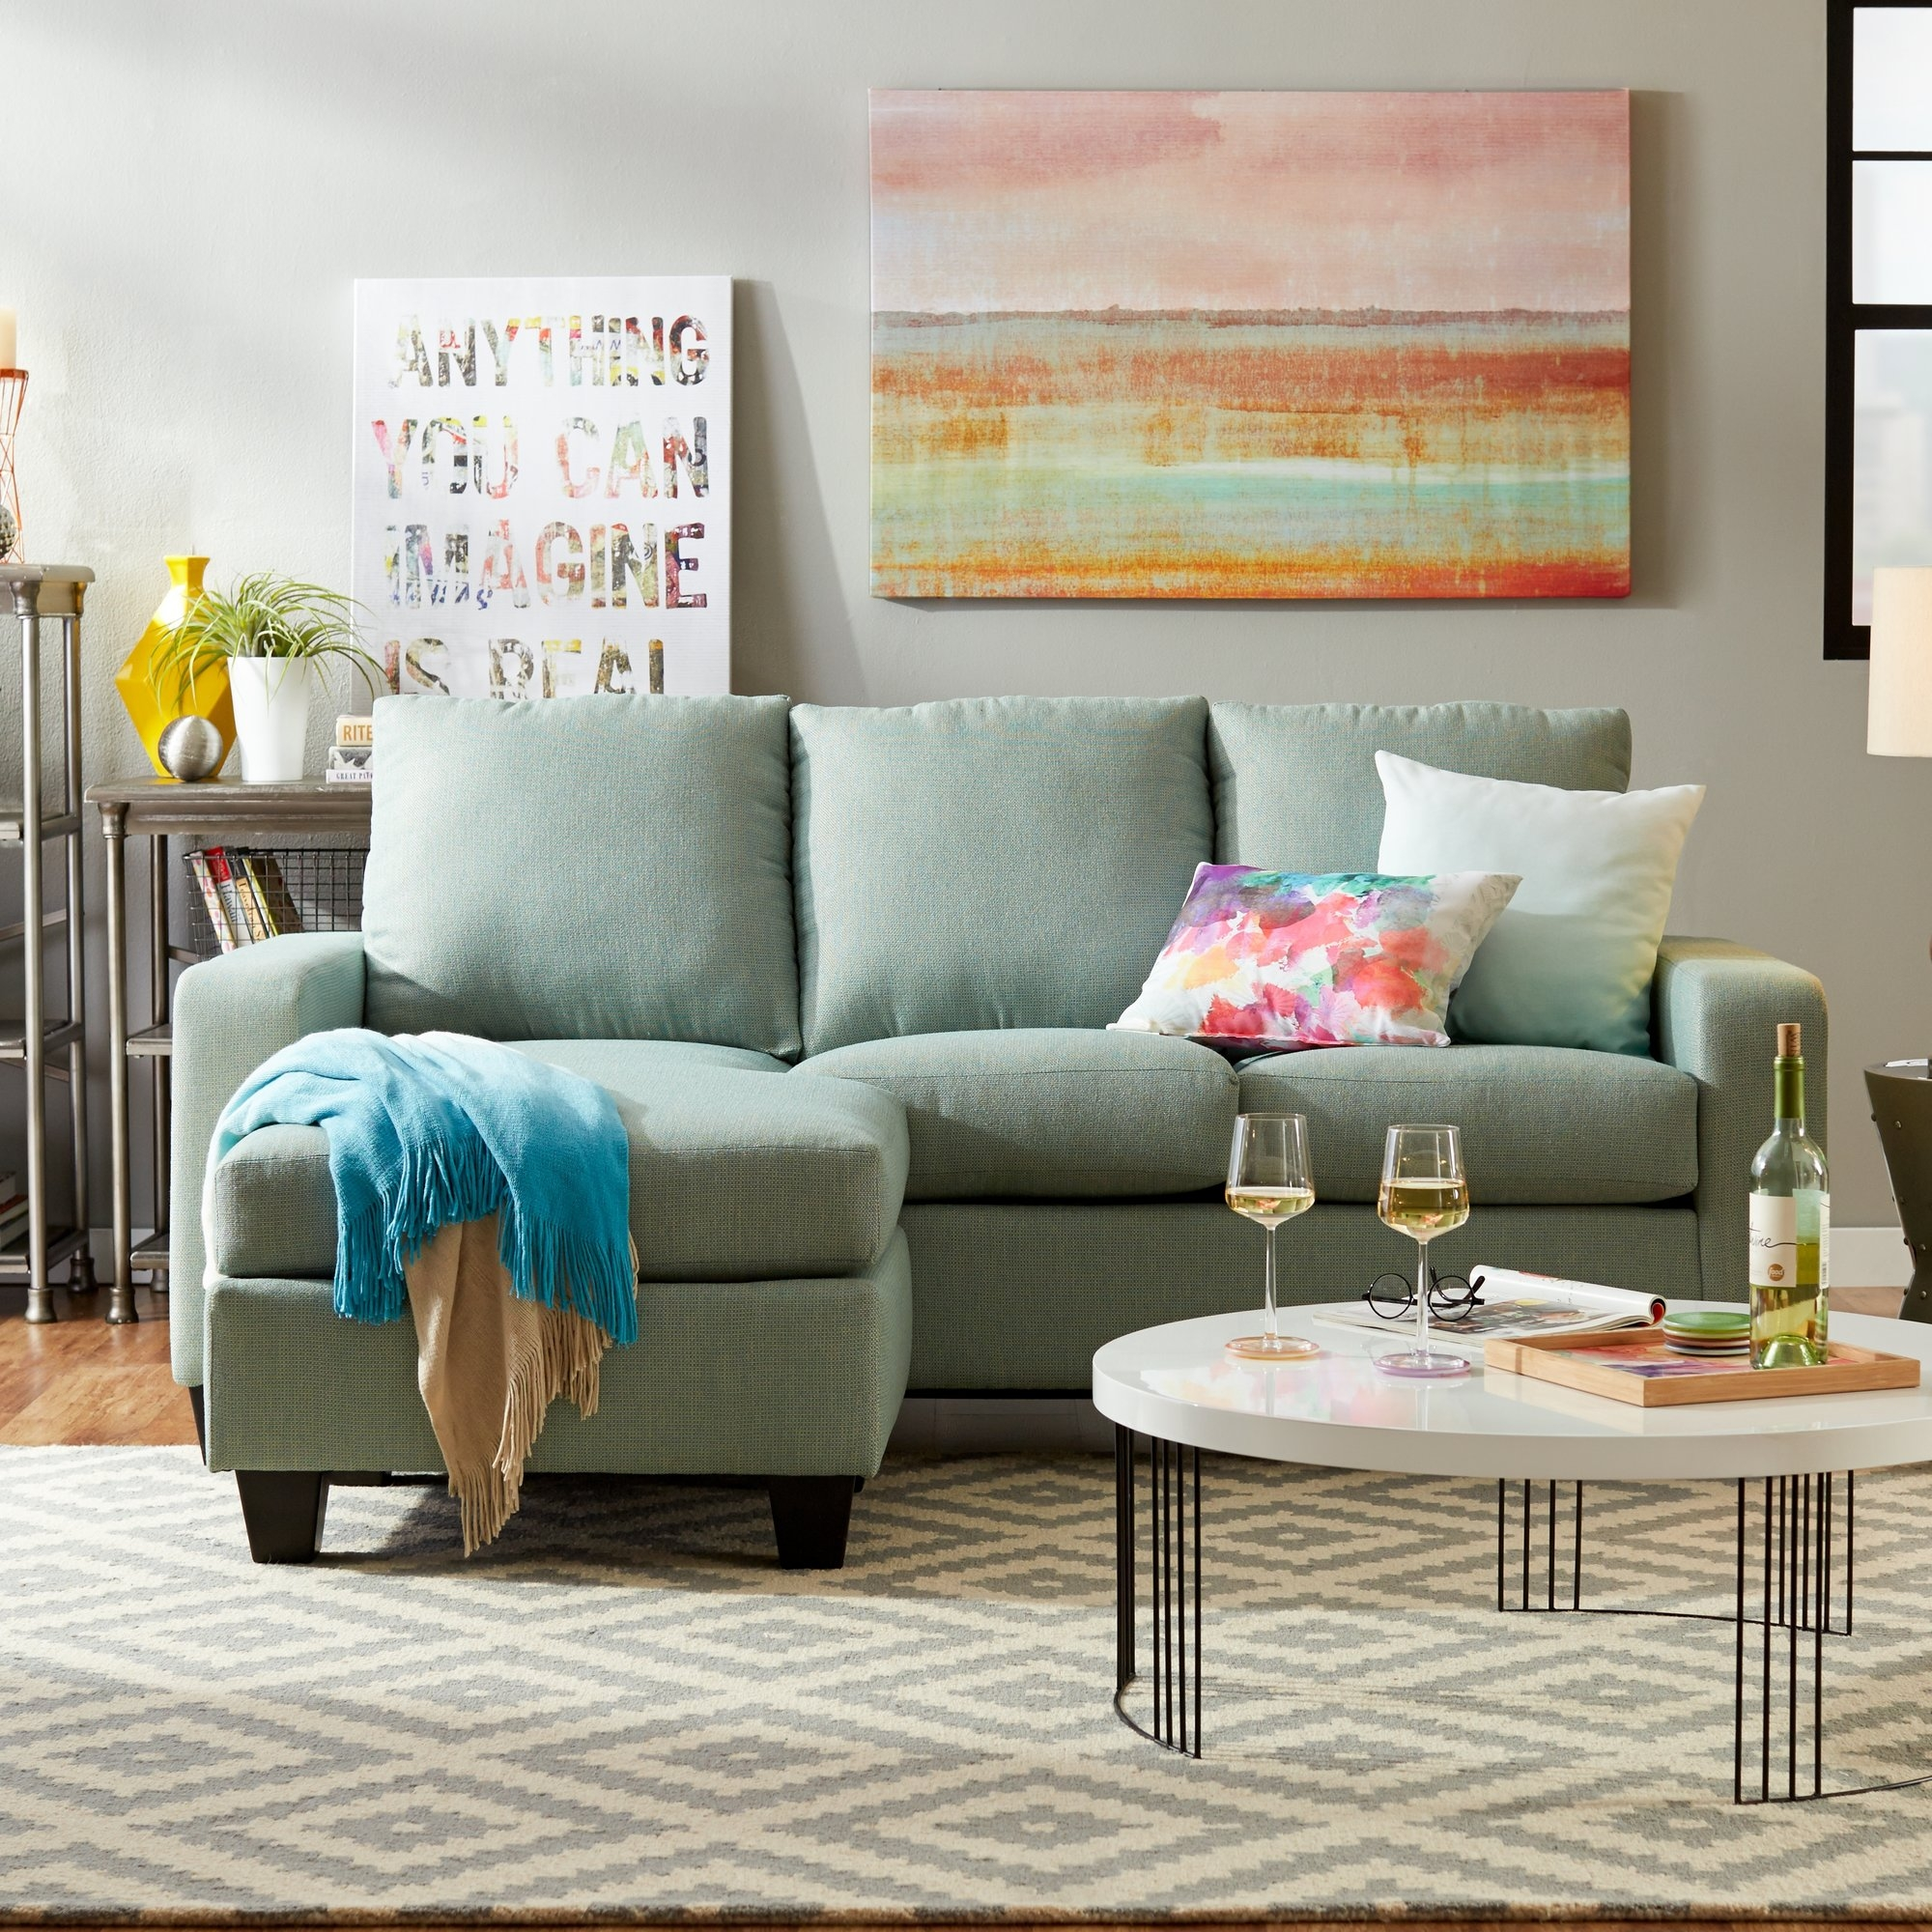 Small Sectional Sofas Youll Love Wayfair Pertaining To Small Sectional Sofa (#11 of 12)